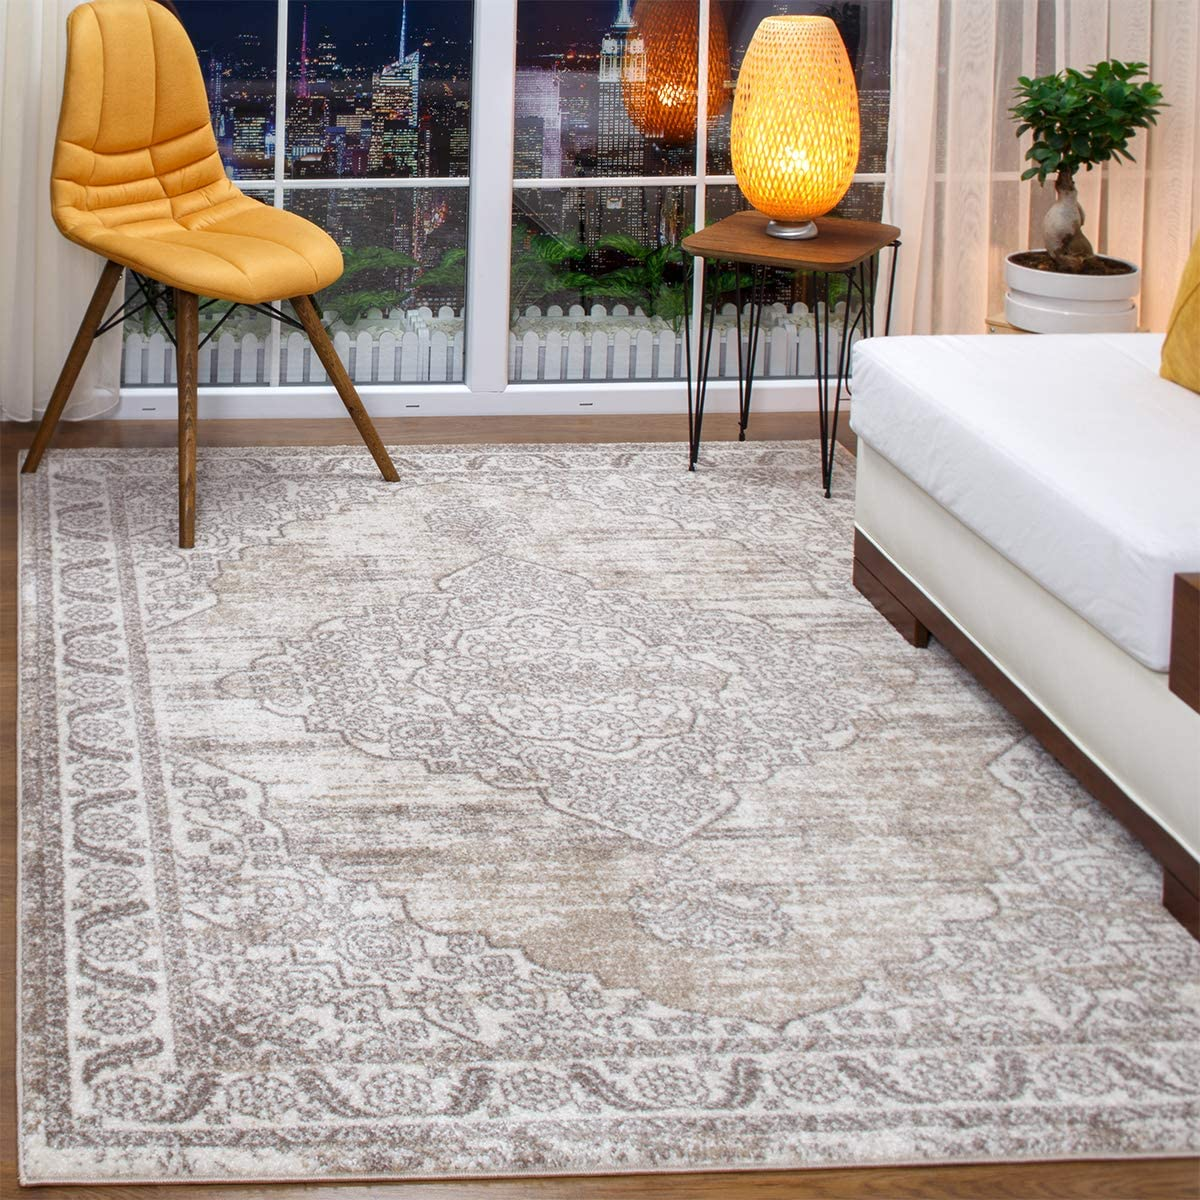 Antep Rugs Florida Collection Distressed Medallion Polypropylene Indoor Area Rug Beige, 8 x 10